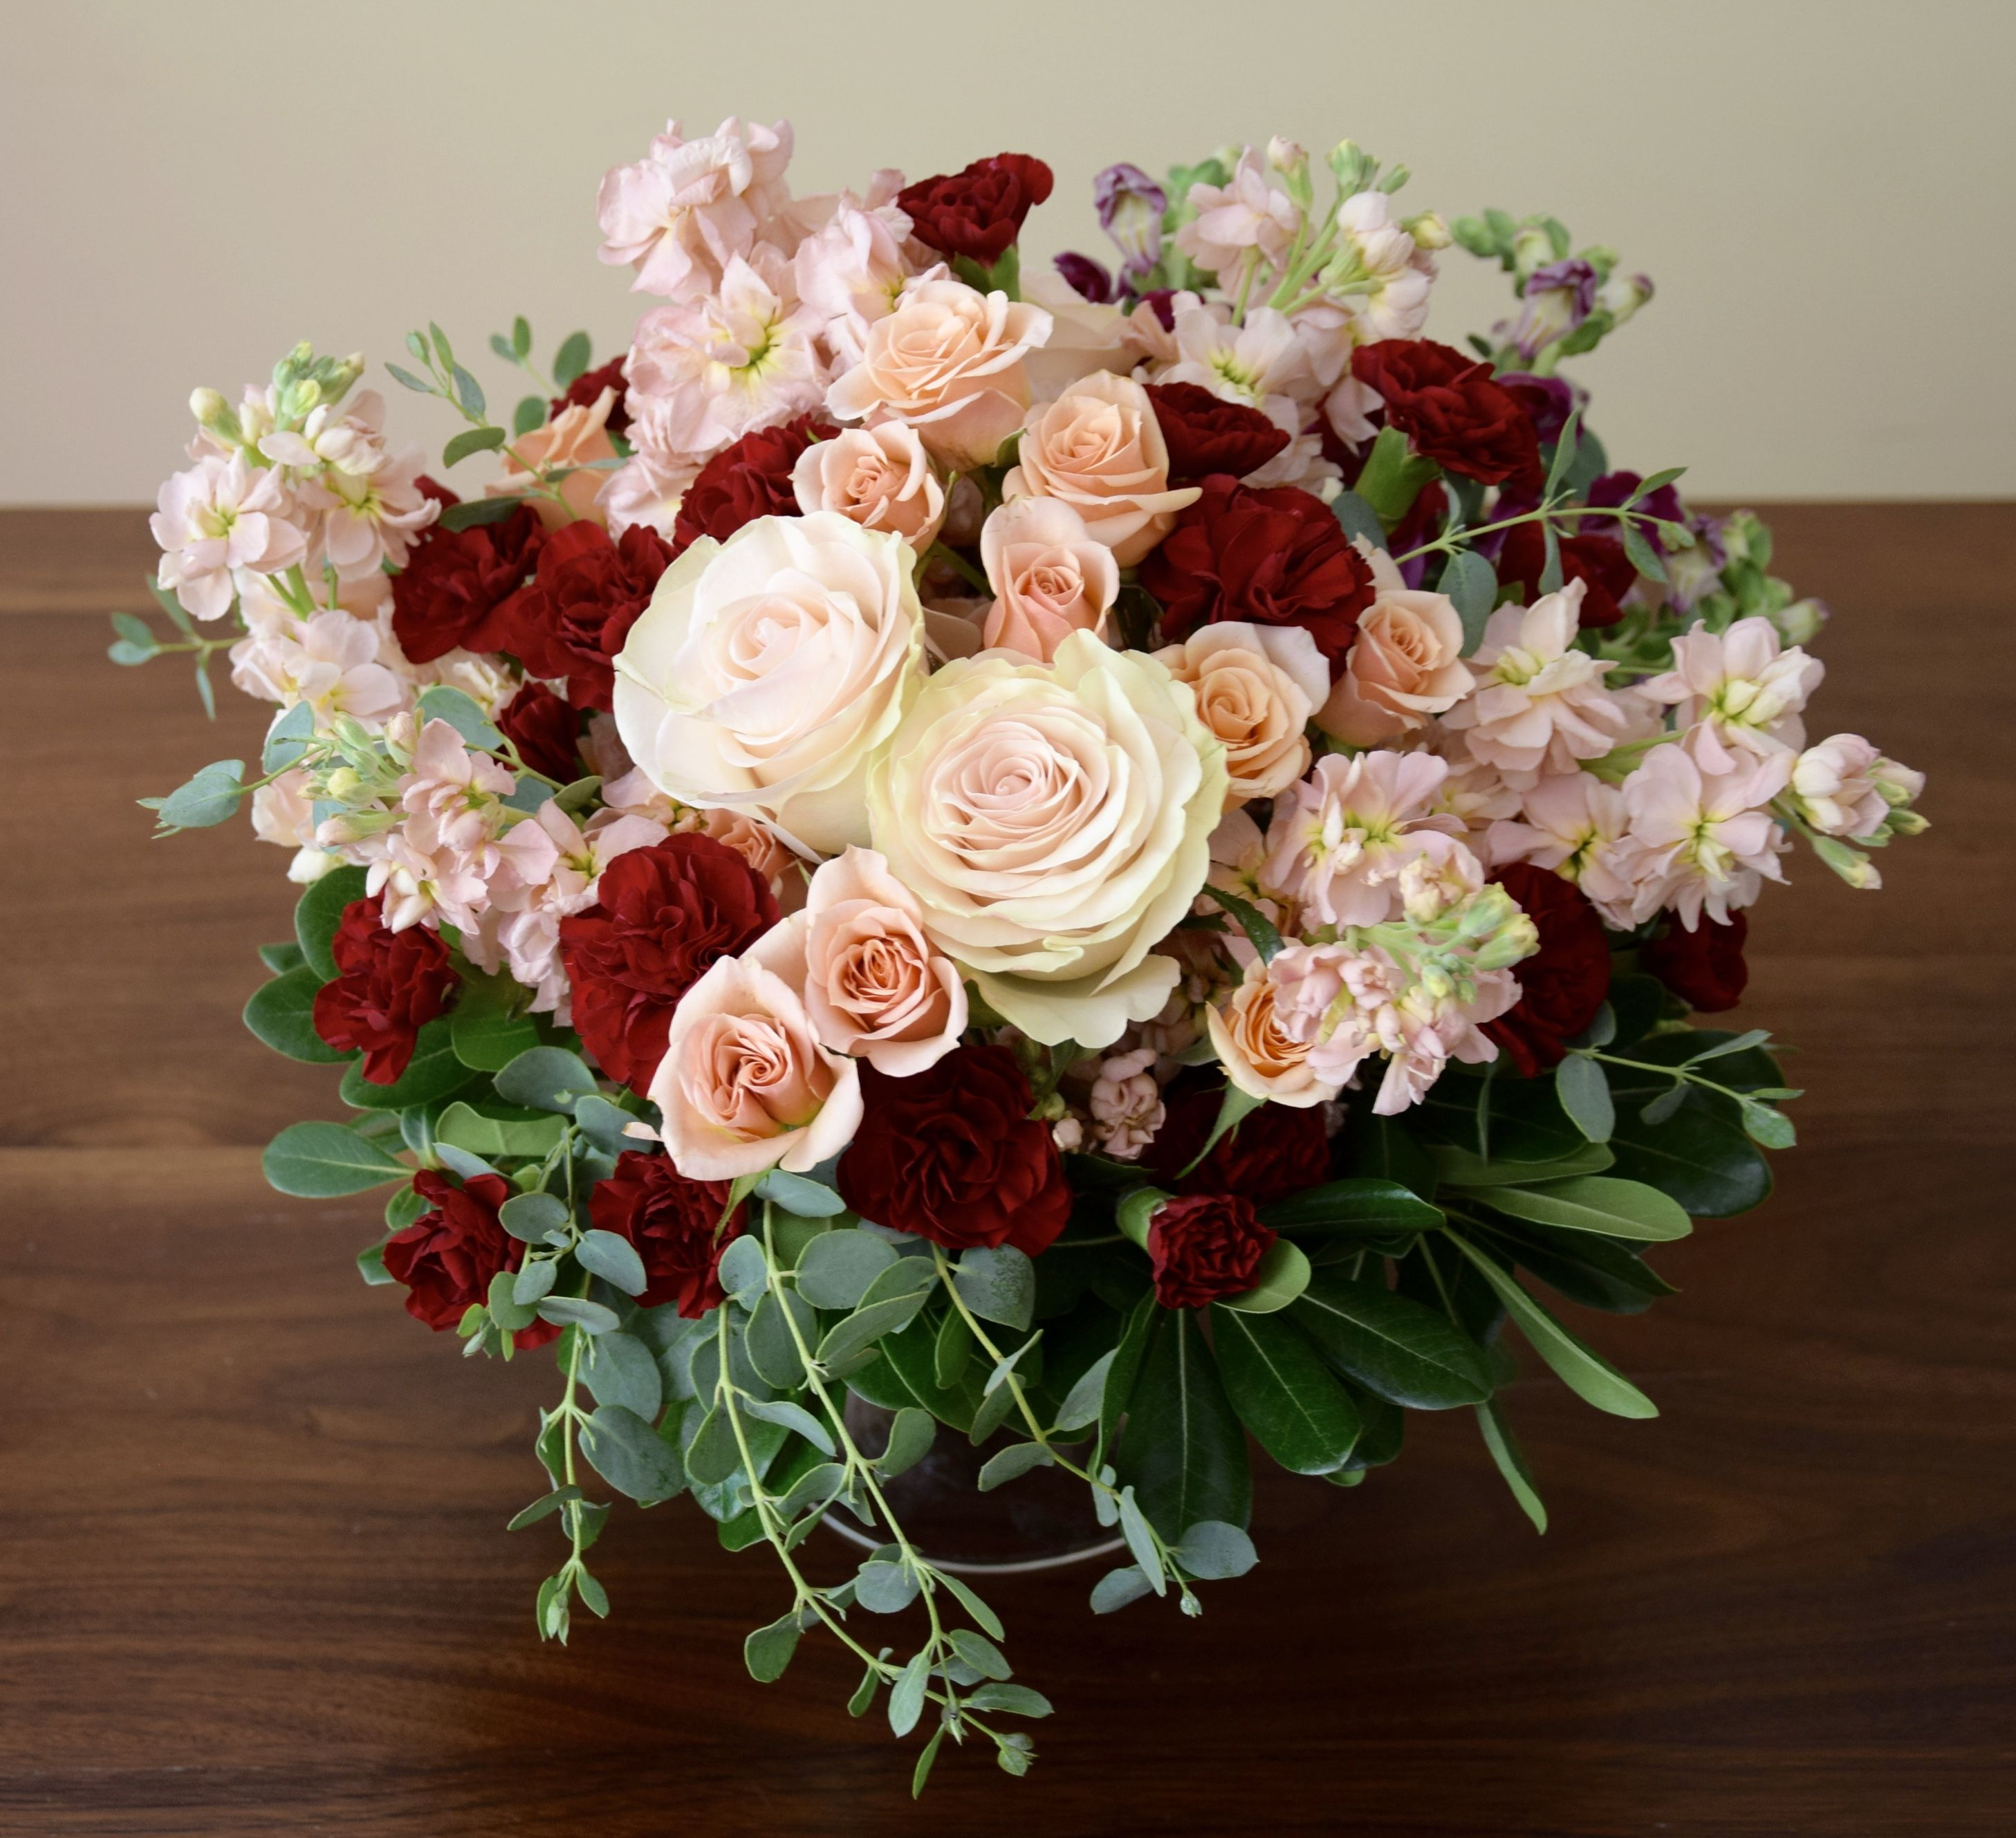 Wedding Table Flower Centerpiece With An Accent On Burgundy And Peach Colors Roses Carnation Wedding Centerpieces Carnation Centerpieces Wedding Table Flowers